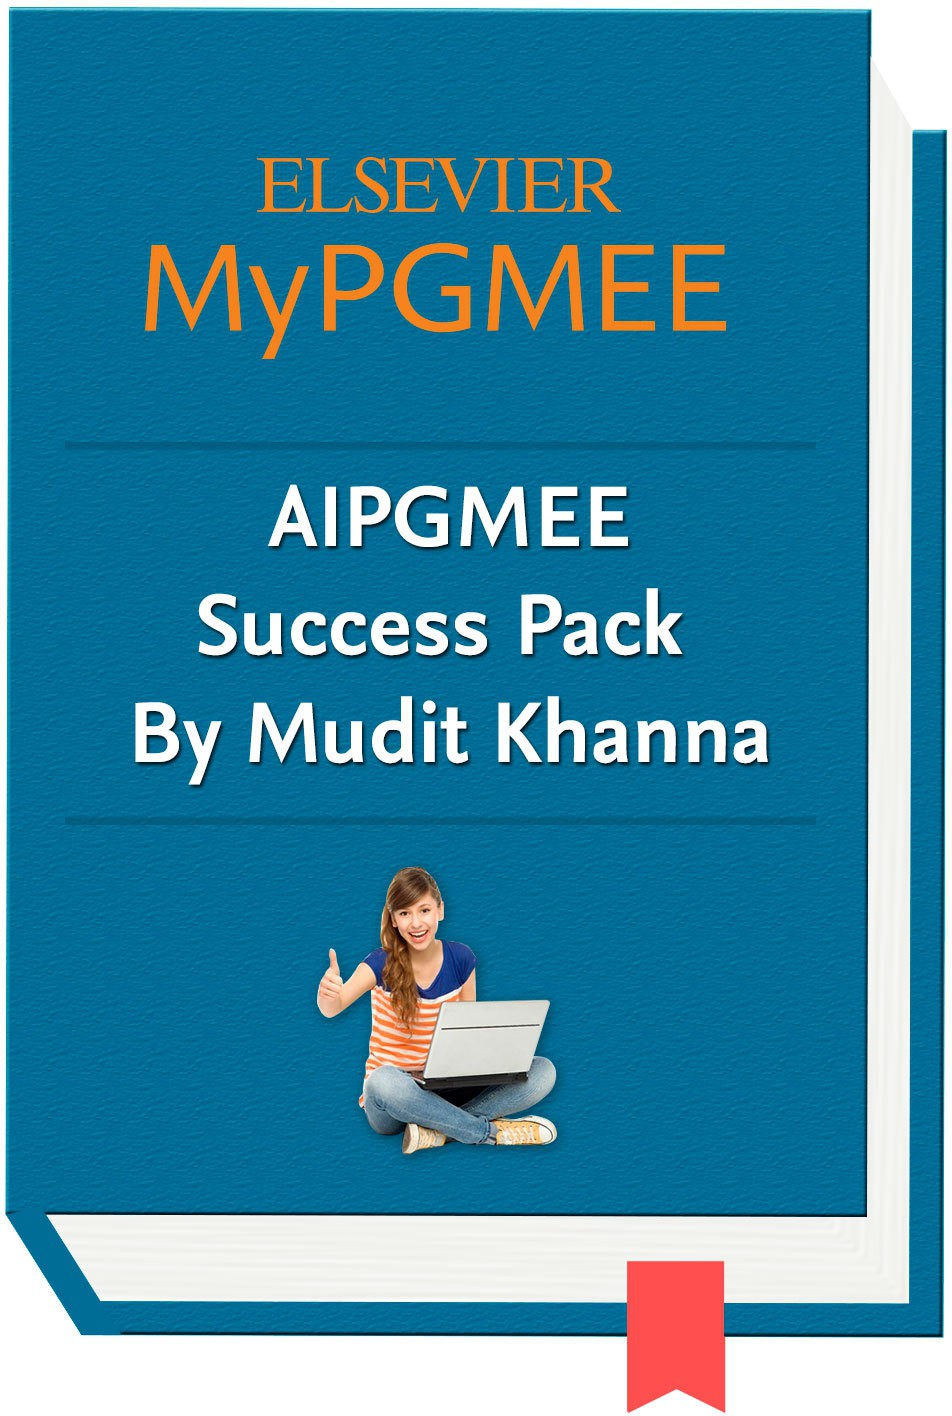 Elsevier MyPGMEE - AIPGMEE Success Pack by Mudit Khanna Online Course(Voucher)